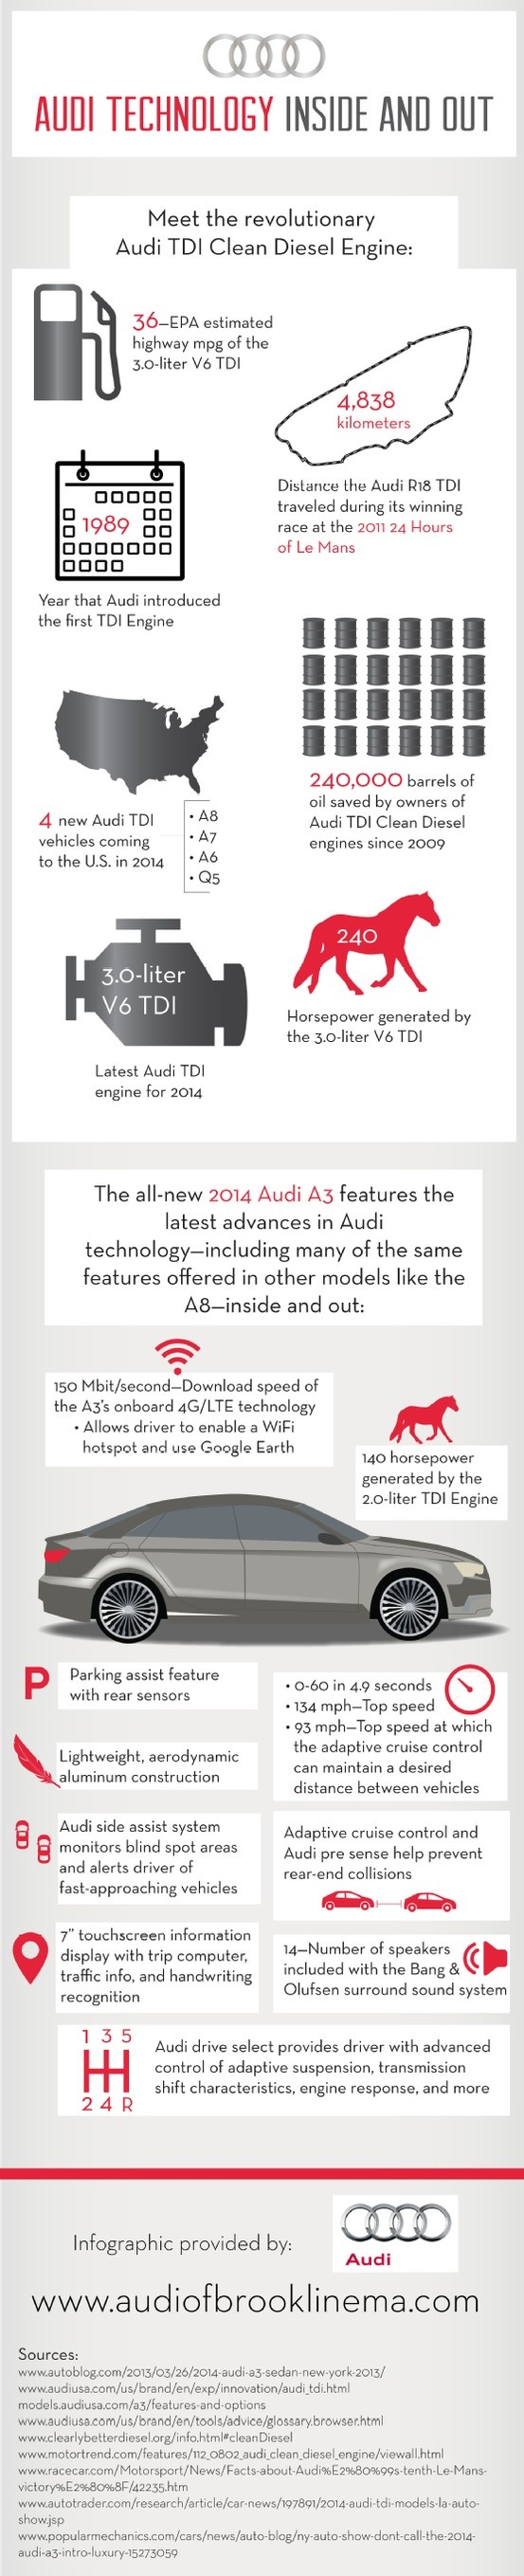 A8, A7, A6, Q5—these are the four new Audi TDI vehicles coming to the United States in 2014! Get a closer look at the stats and features of some of Audi's most popular and most anticipated vehicles on this infographic.